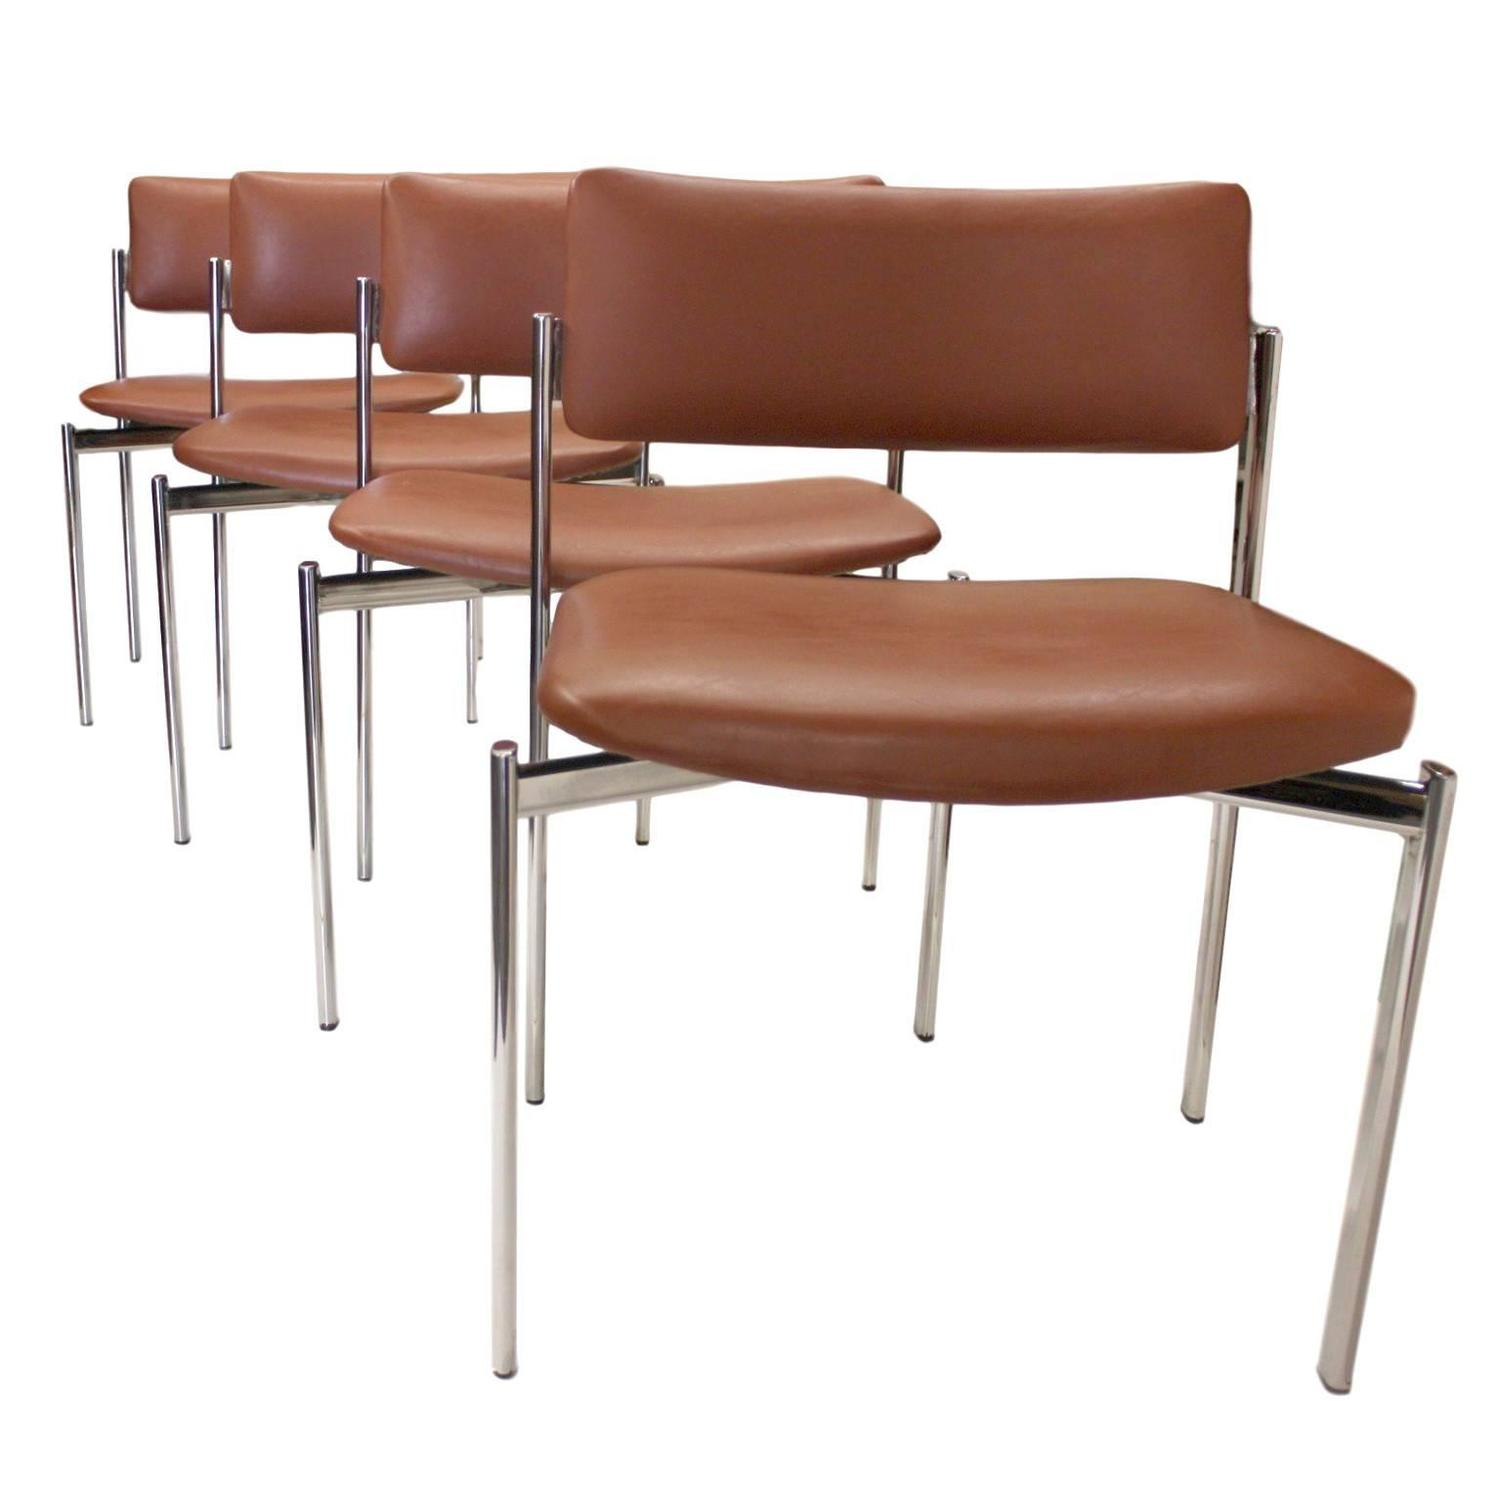 Eight Mid Century Modern Chrome Stacking Dining Side or Game